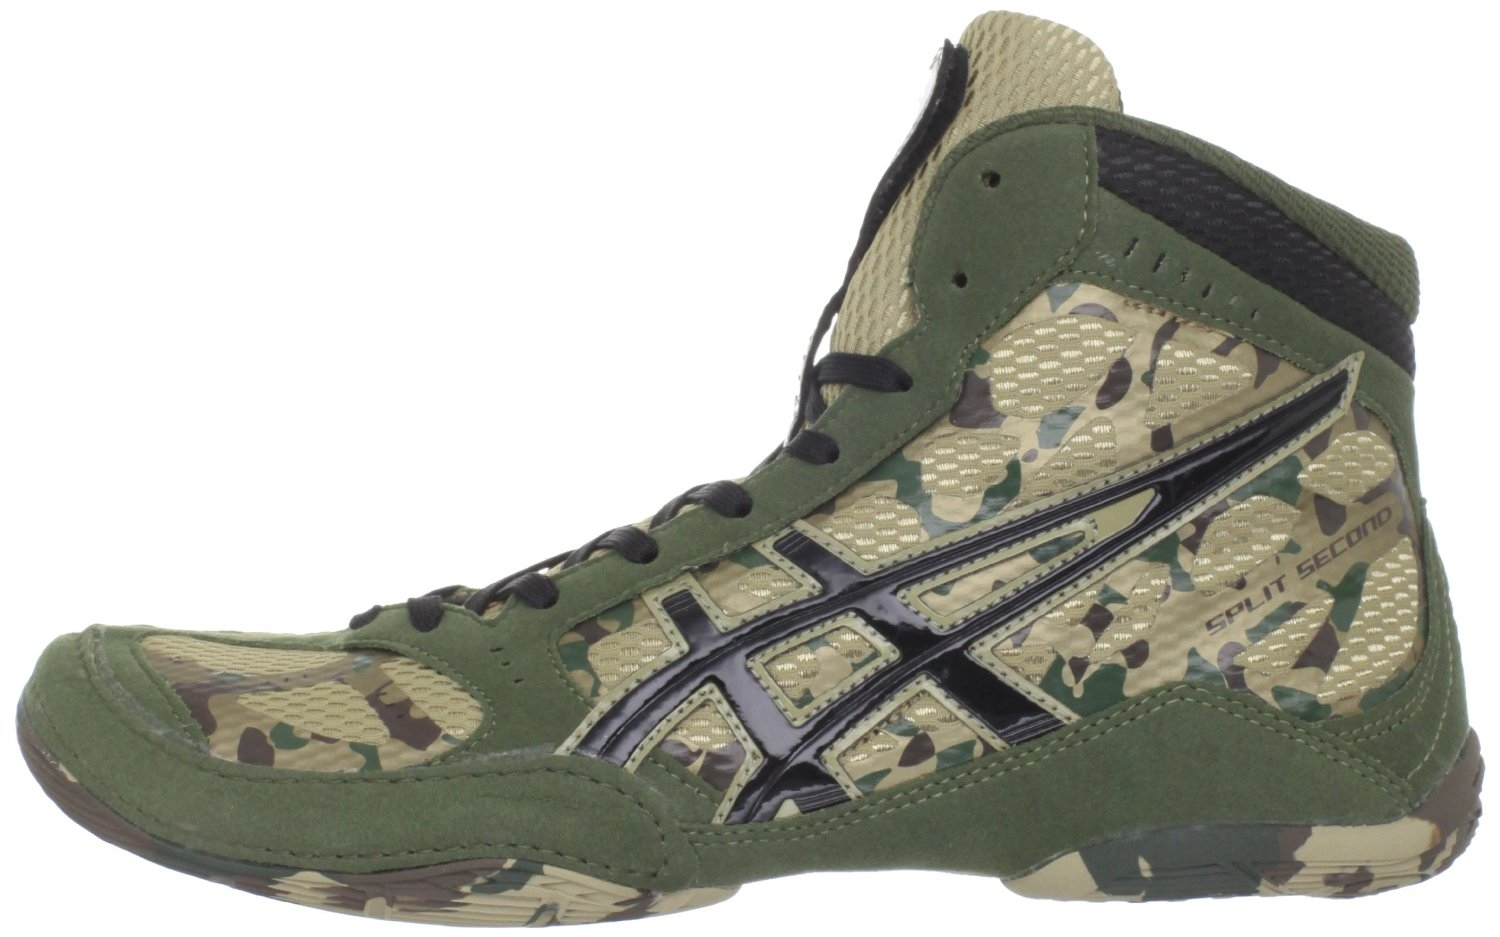 Asics Red Camo Wrestling Shoes le Wrestling Shoes Camo